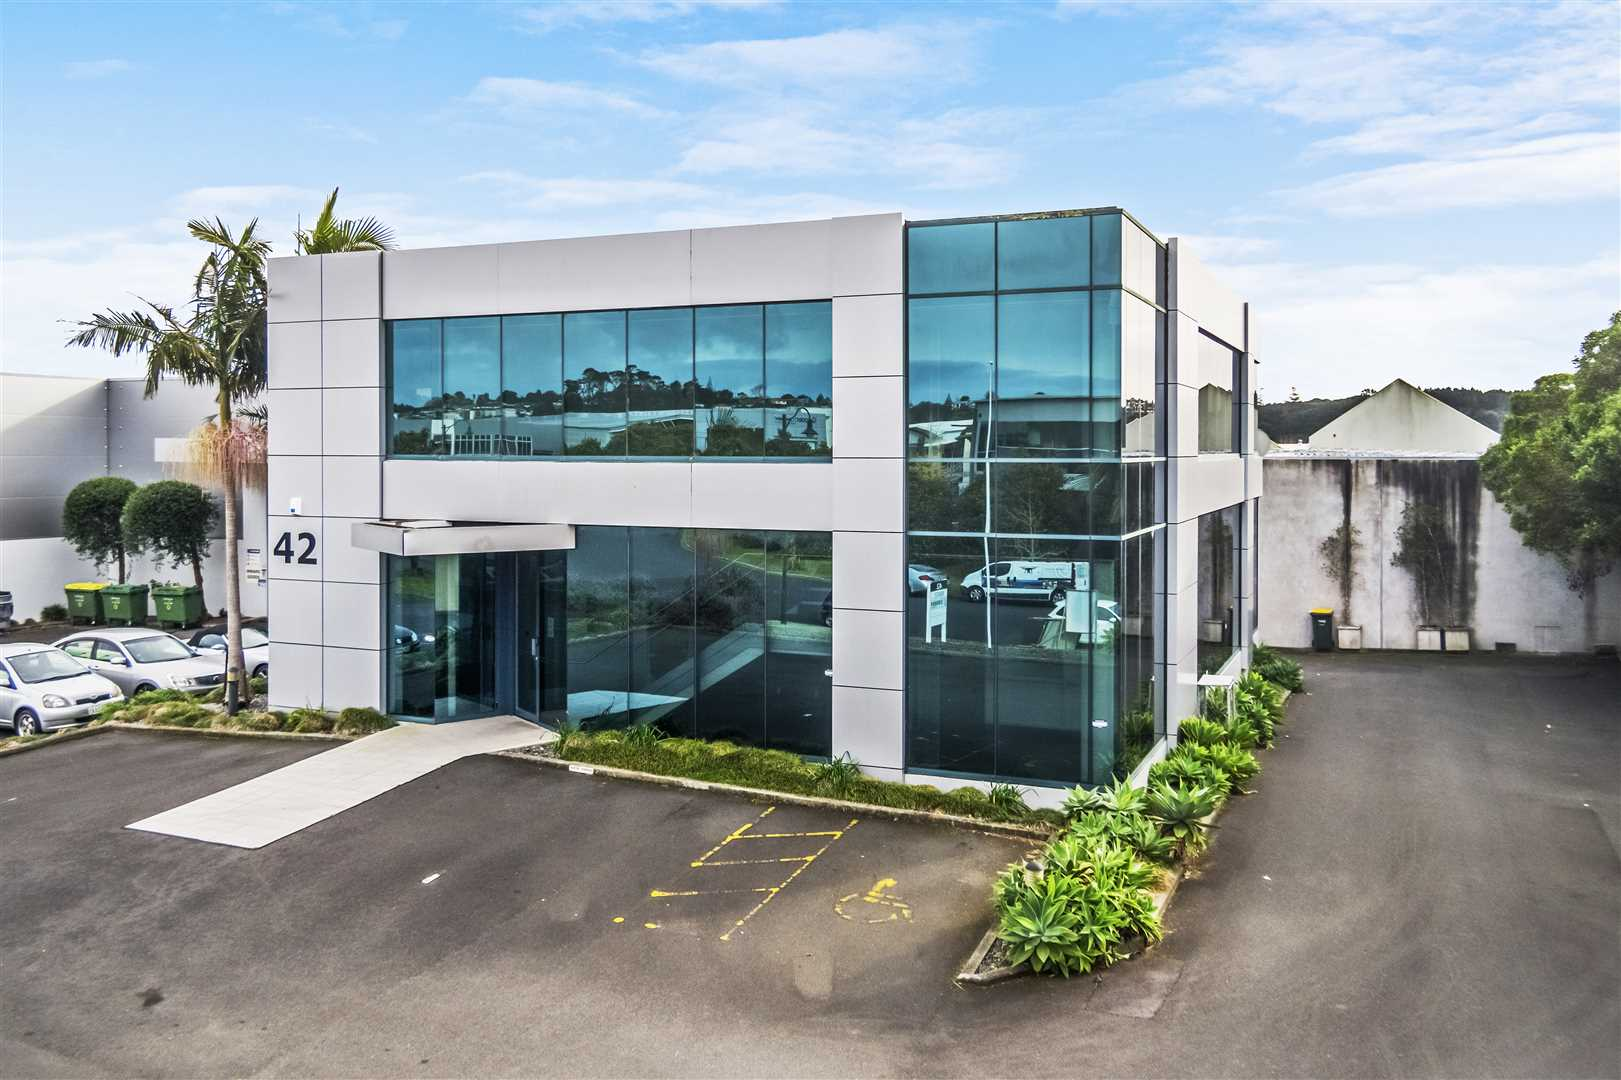 Refreshed North Shore Headquarters - for lease